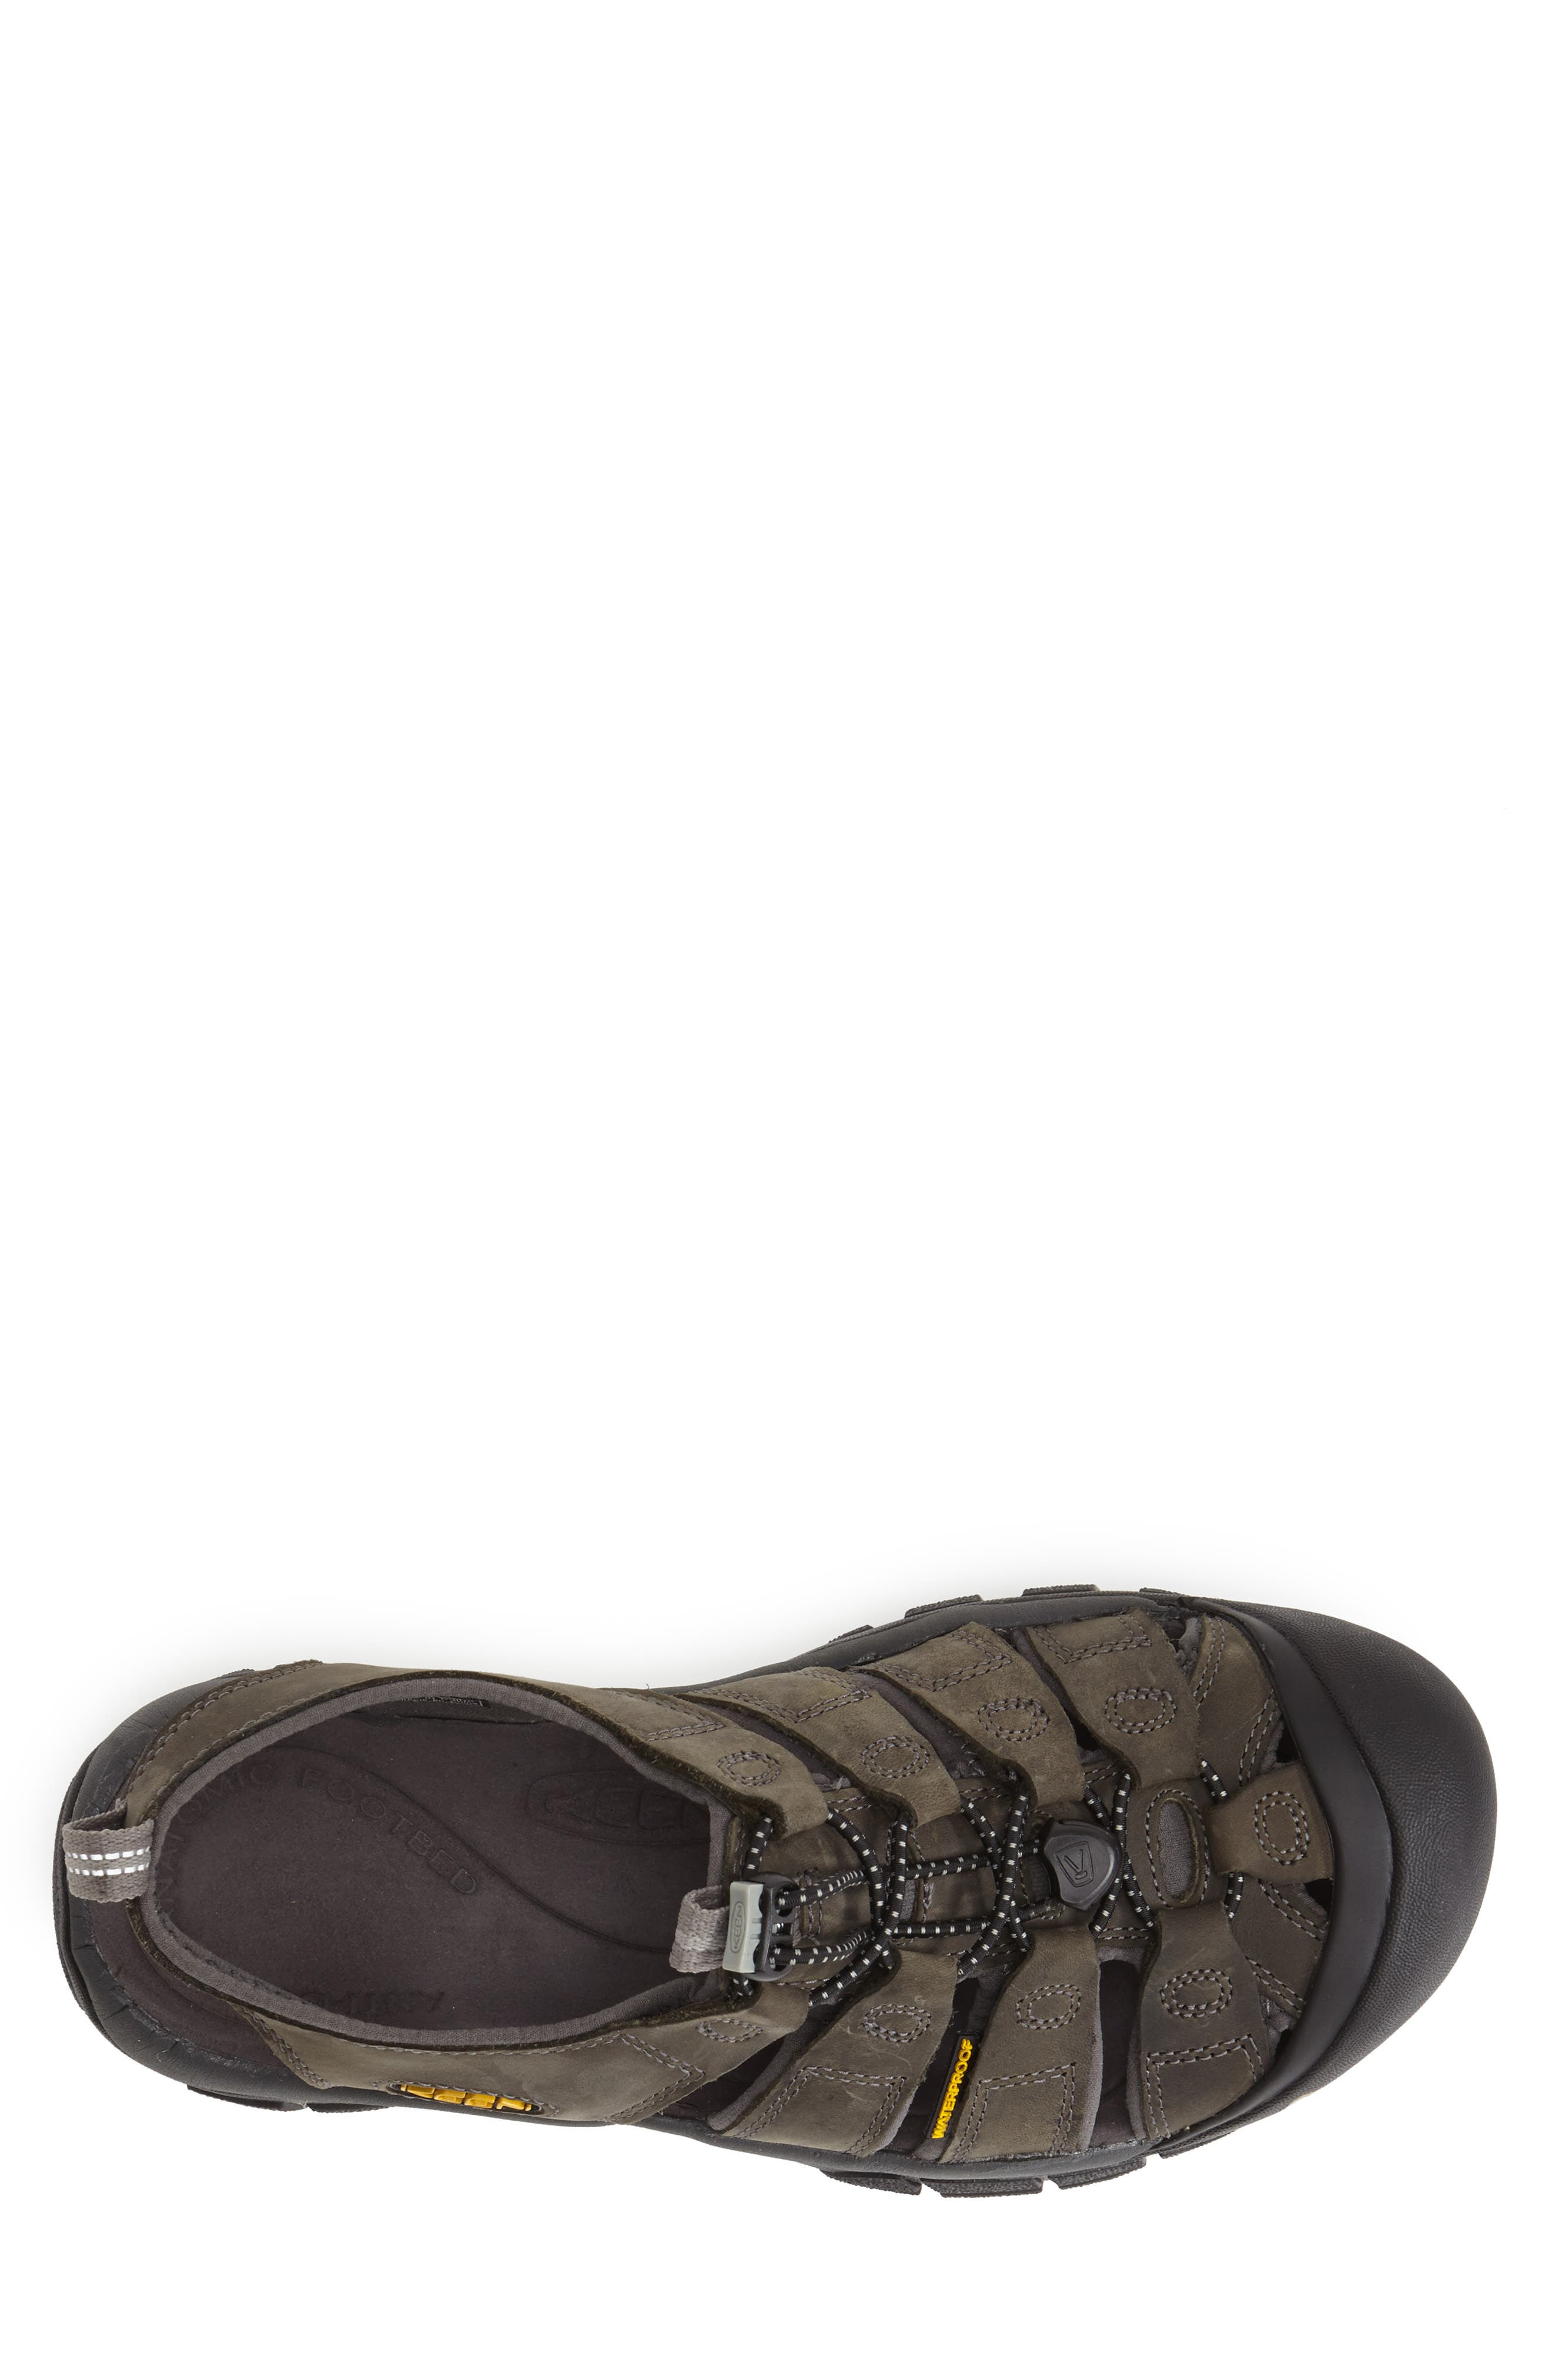 'Newport' Water Sandal,                             Alternate thumbnail 5, color,                             NEUTRAL GREY/ GARGOYLE